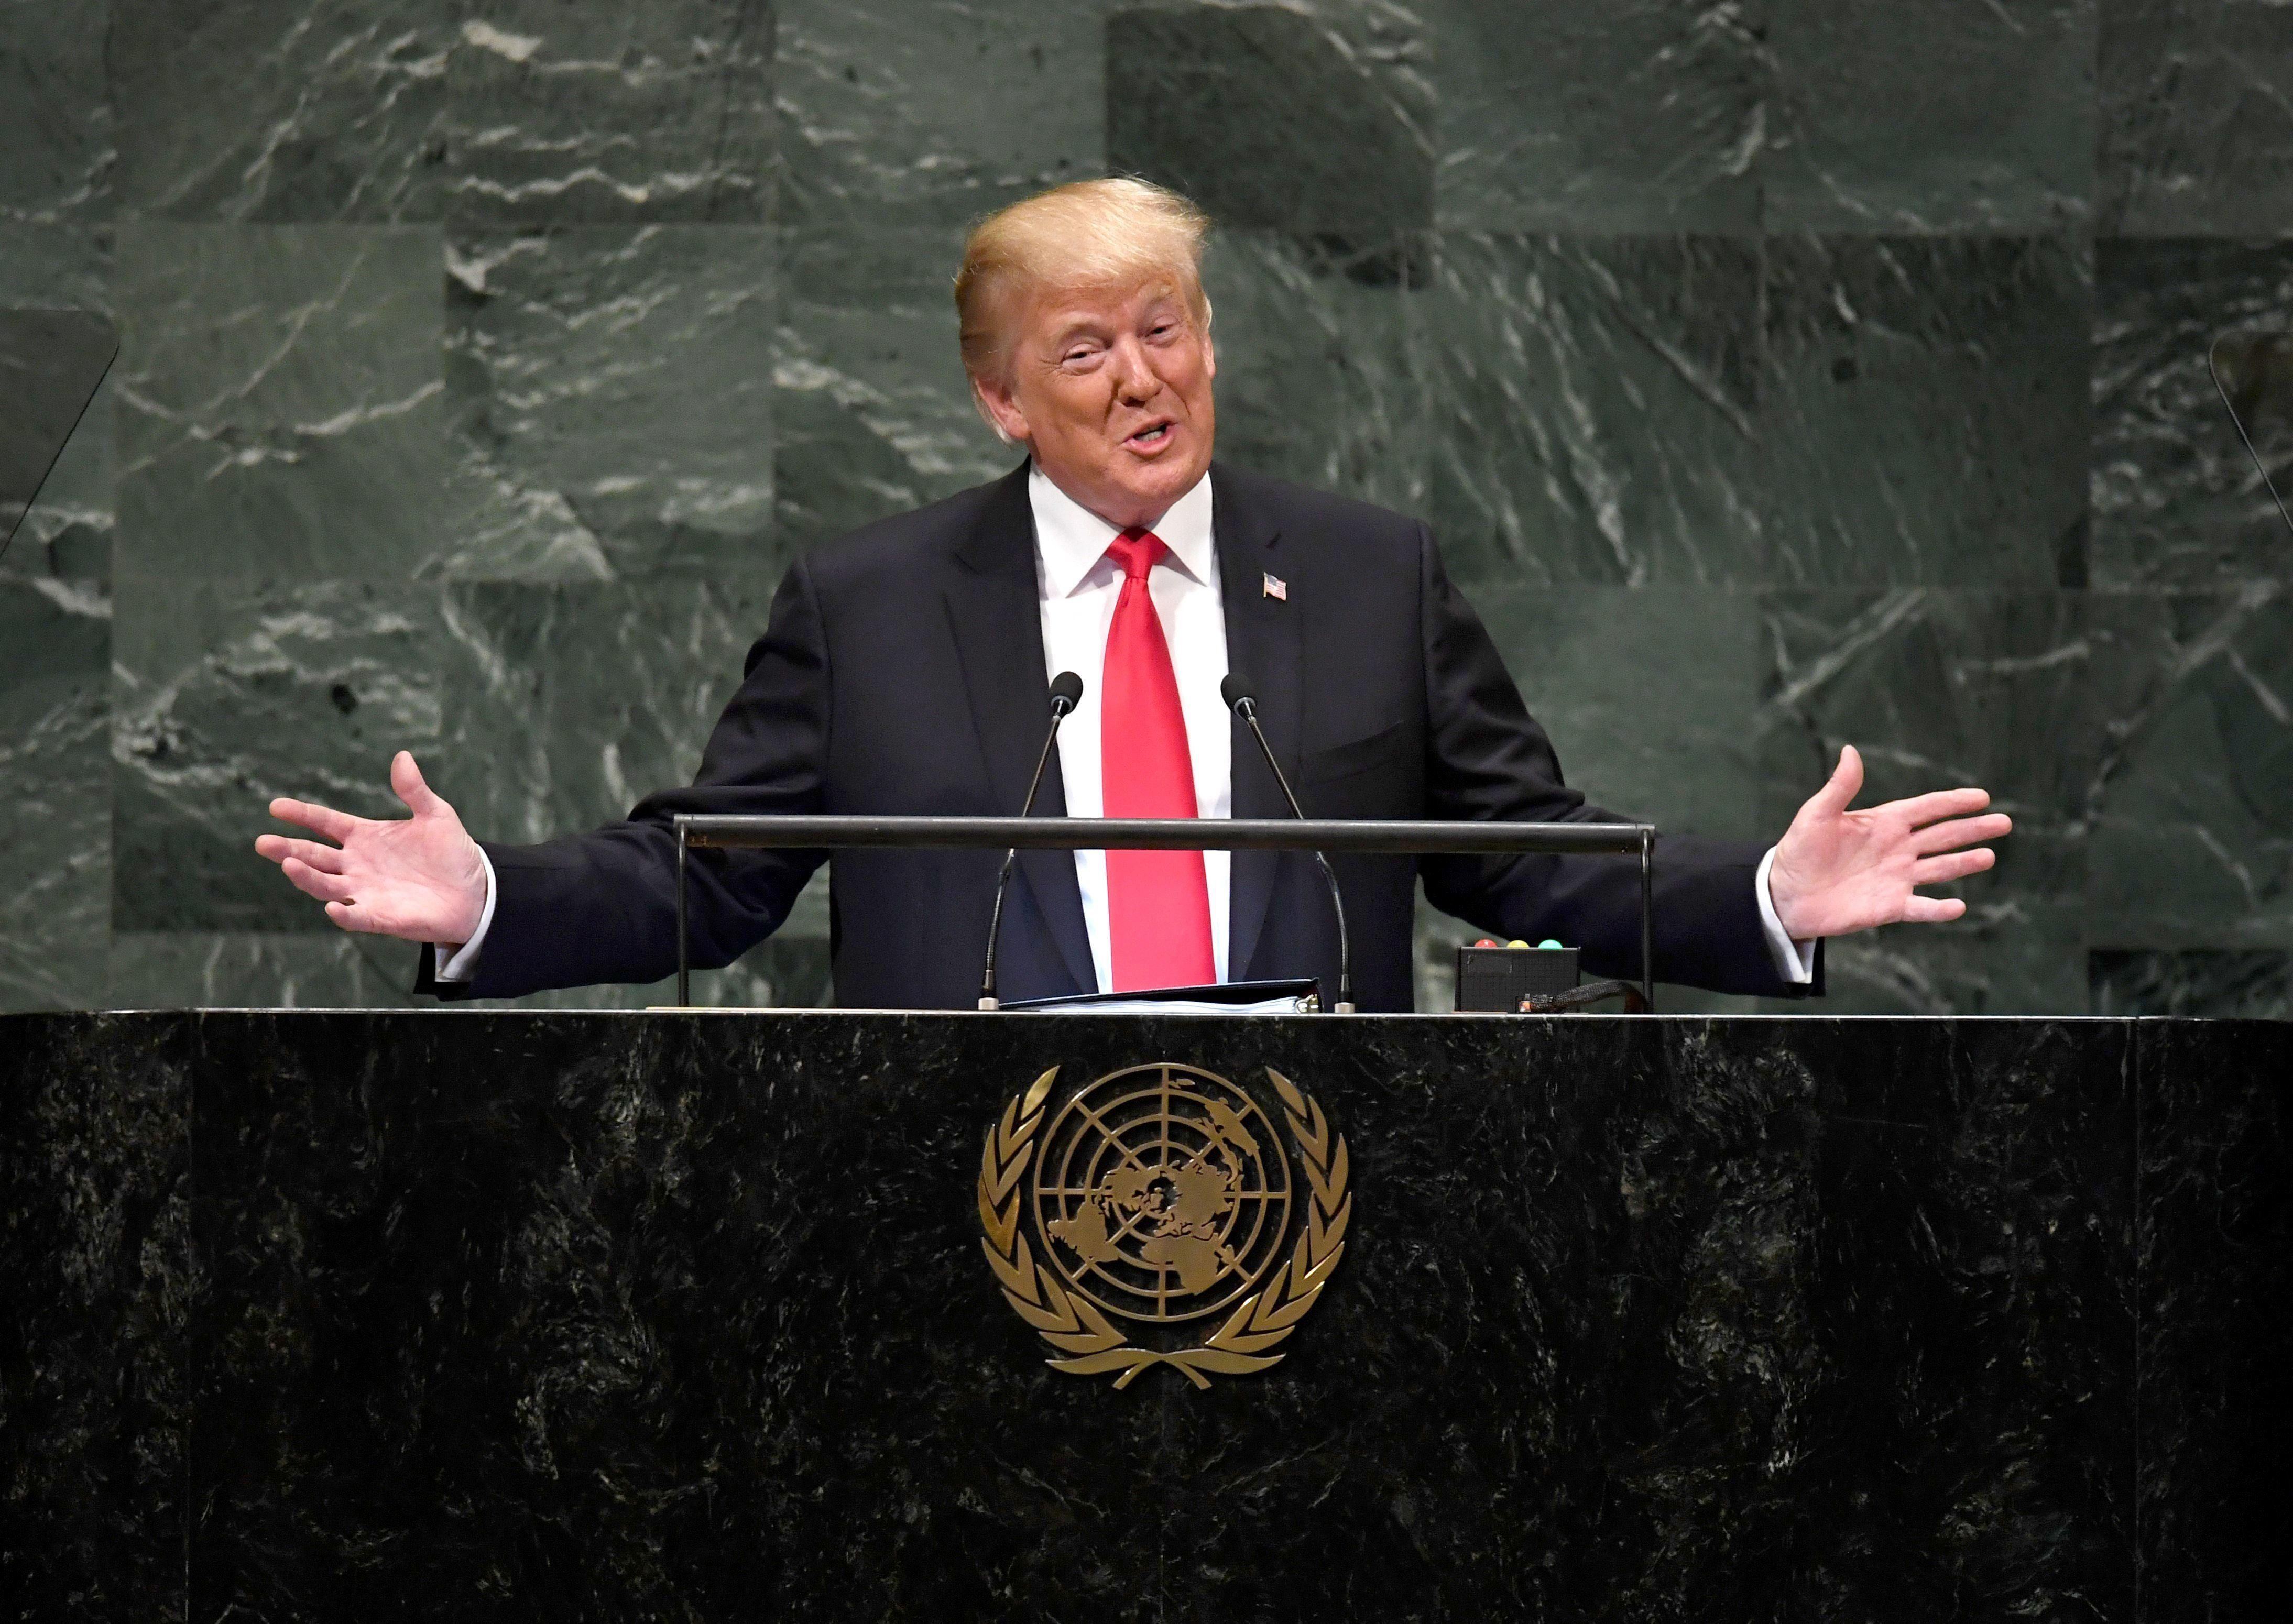 US President Donald Trump addresses the 73rd session of the General Assembly at the United Nations in New York September 25, 2018. (Photo by TIMOTHY A. CLARY / AFP)        (Photo credit should read TIMOTHY A. CLARY/AFP/Getty Images)